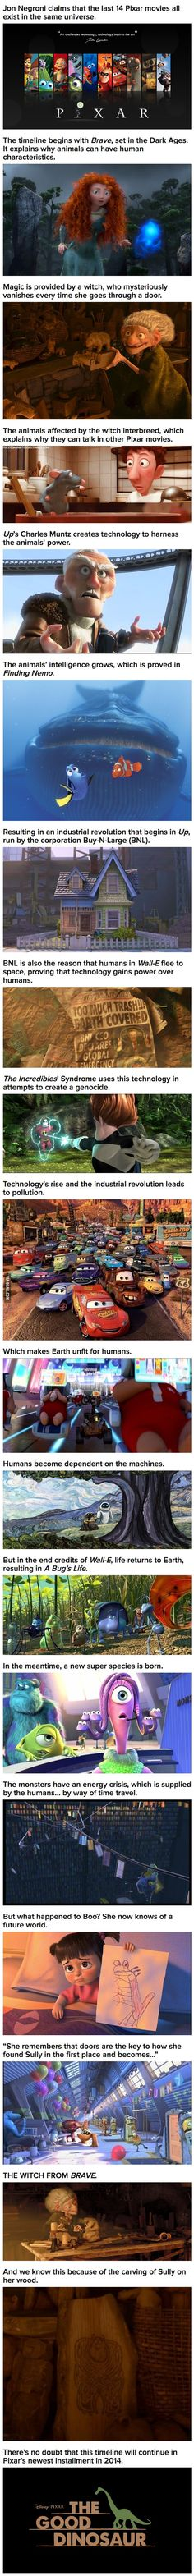 Pixar movies explained. So many feels for Boo!